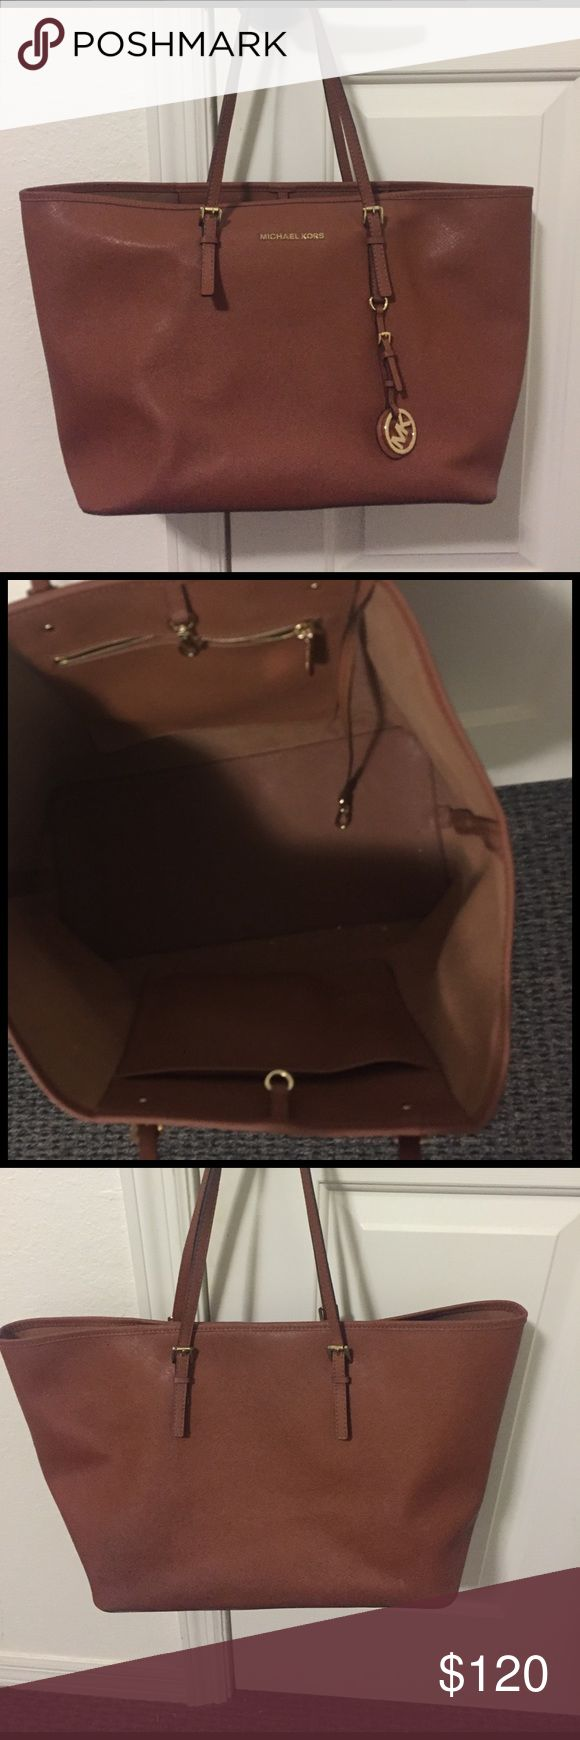 Large Michael Kors Jet Set Tote A large luggage color Michael Kors purse. In great condition. Michael Kors Bags Totes